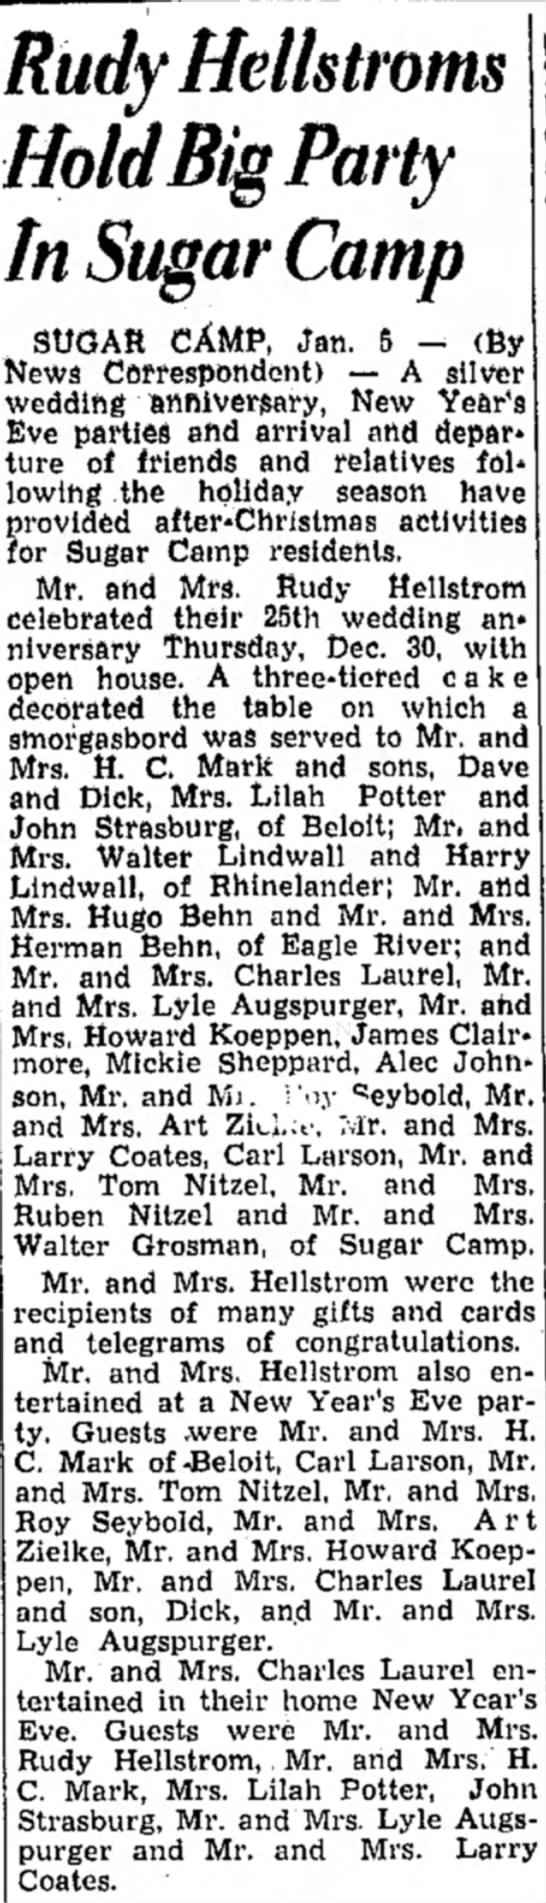 The Rhinelander Daily News  5  January 1949 - Rudy Hellstroms Hold Big Party In Sugar Camp...